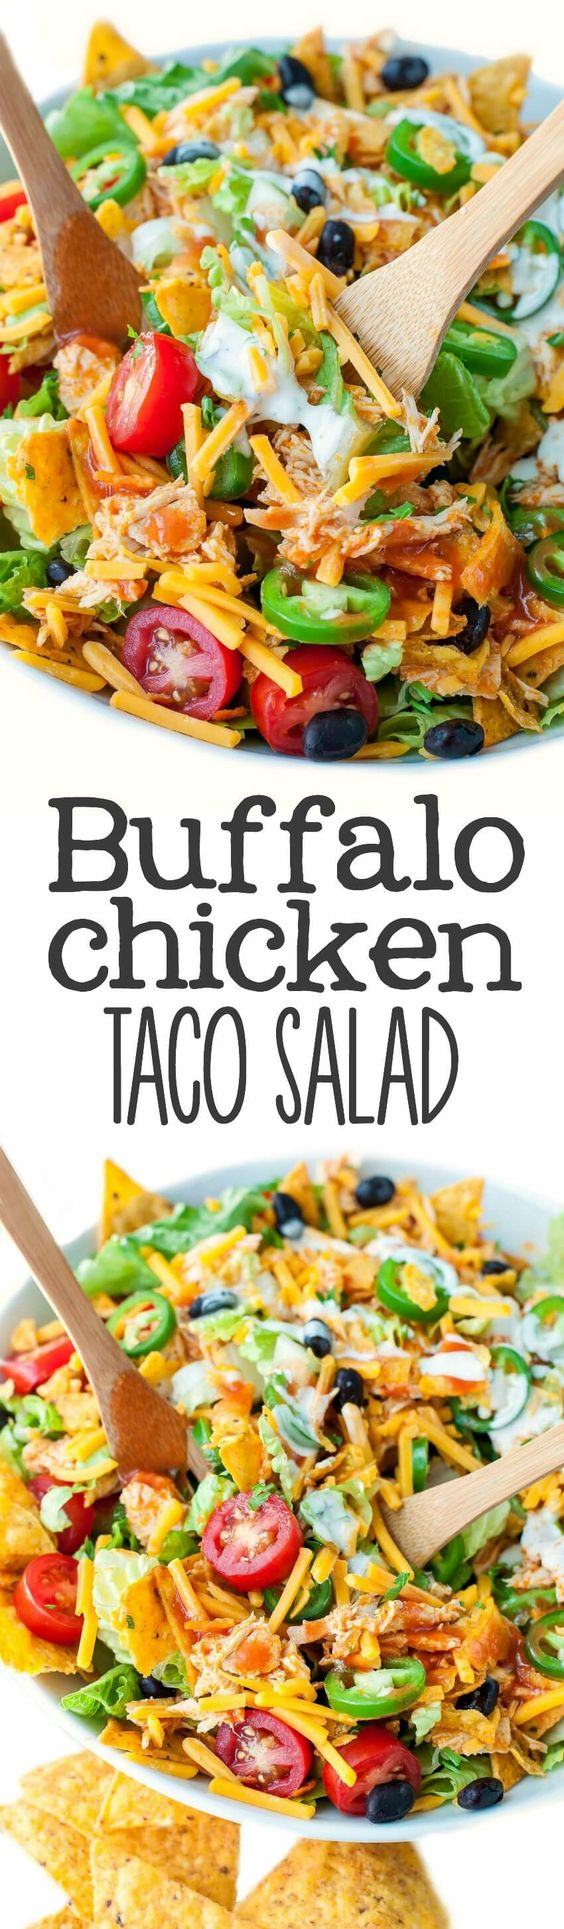 Buffalo Chicken Taco Salad Recipe via Peas and Crayons - This is totally my new favorite way to use up leftover chicken!: